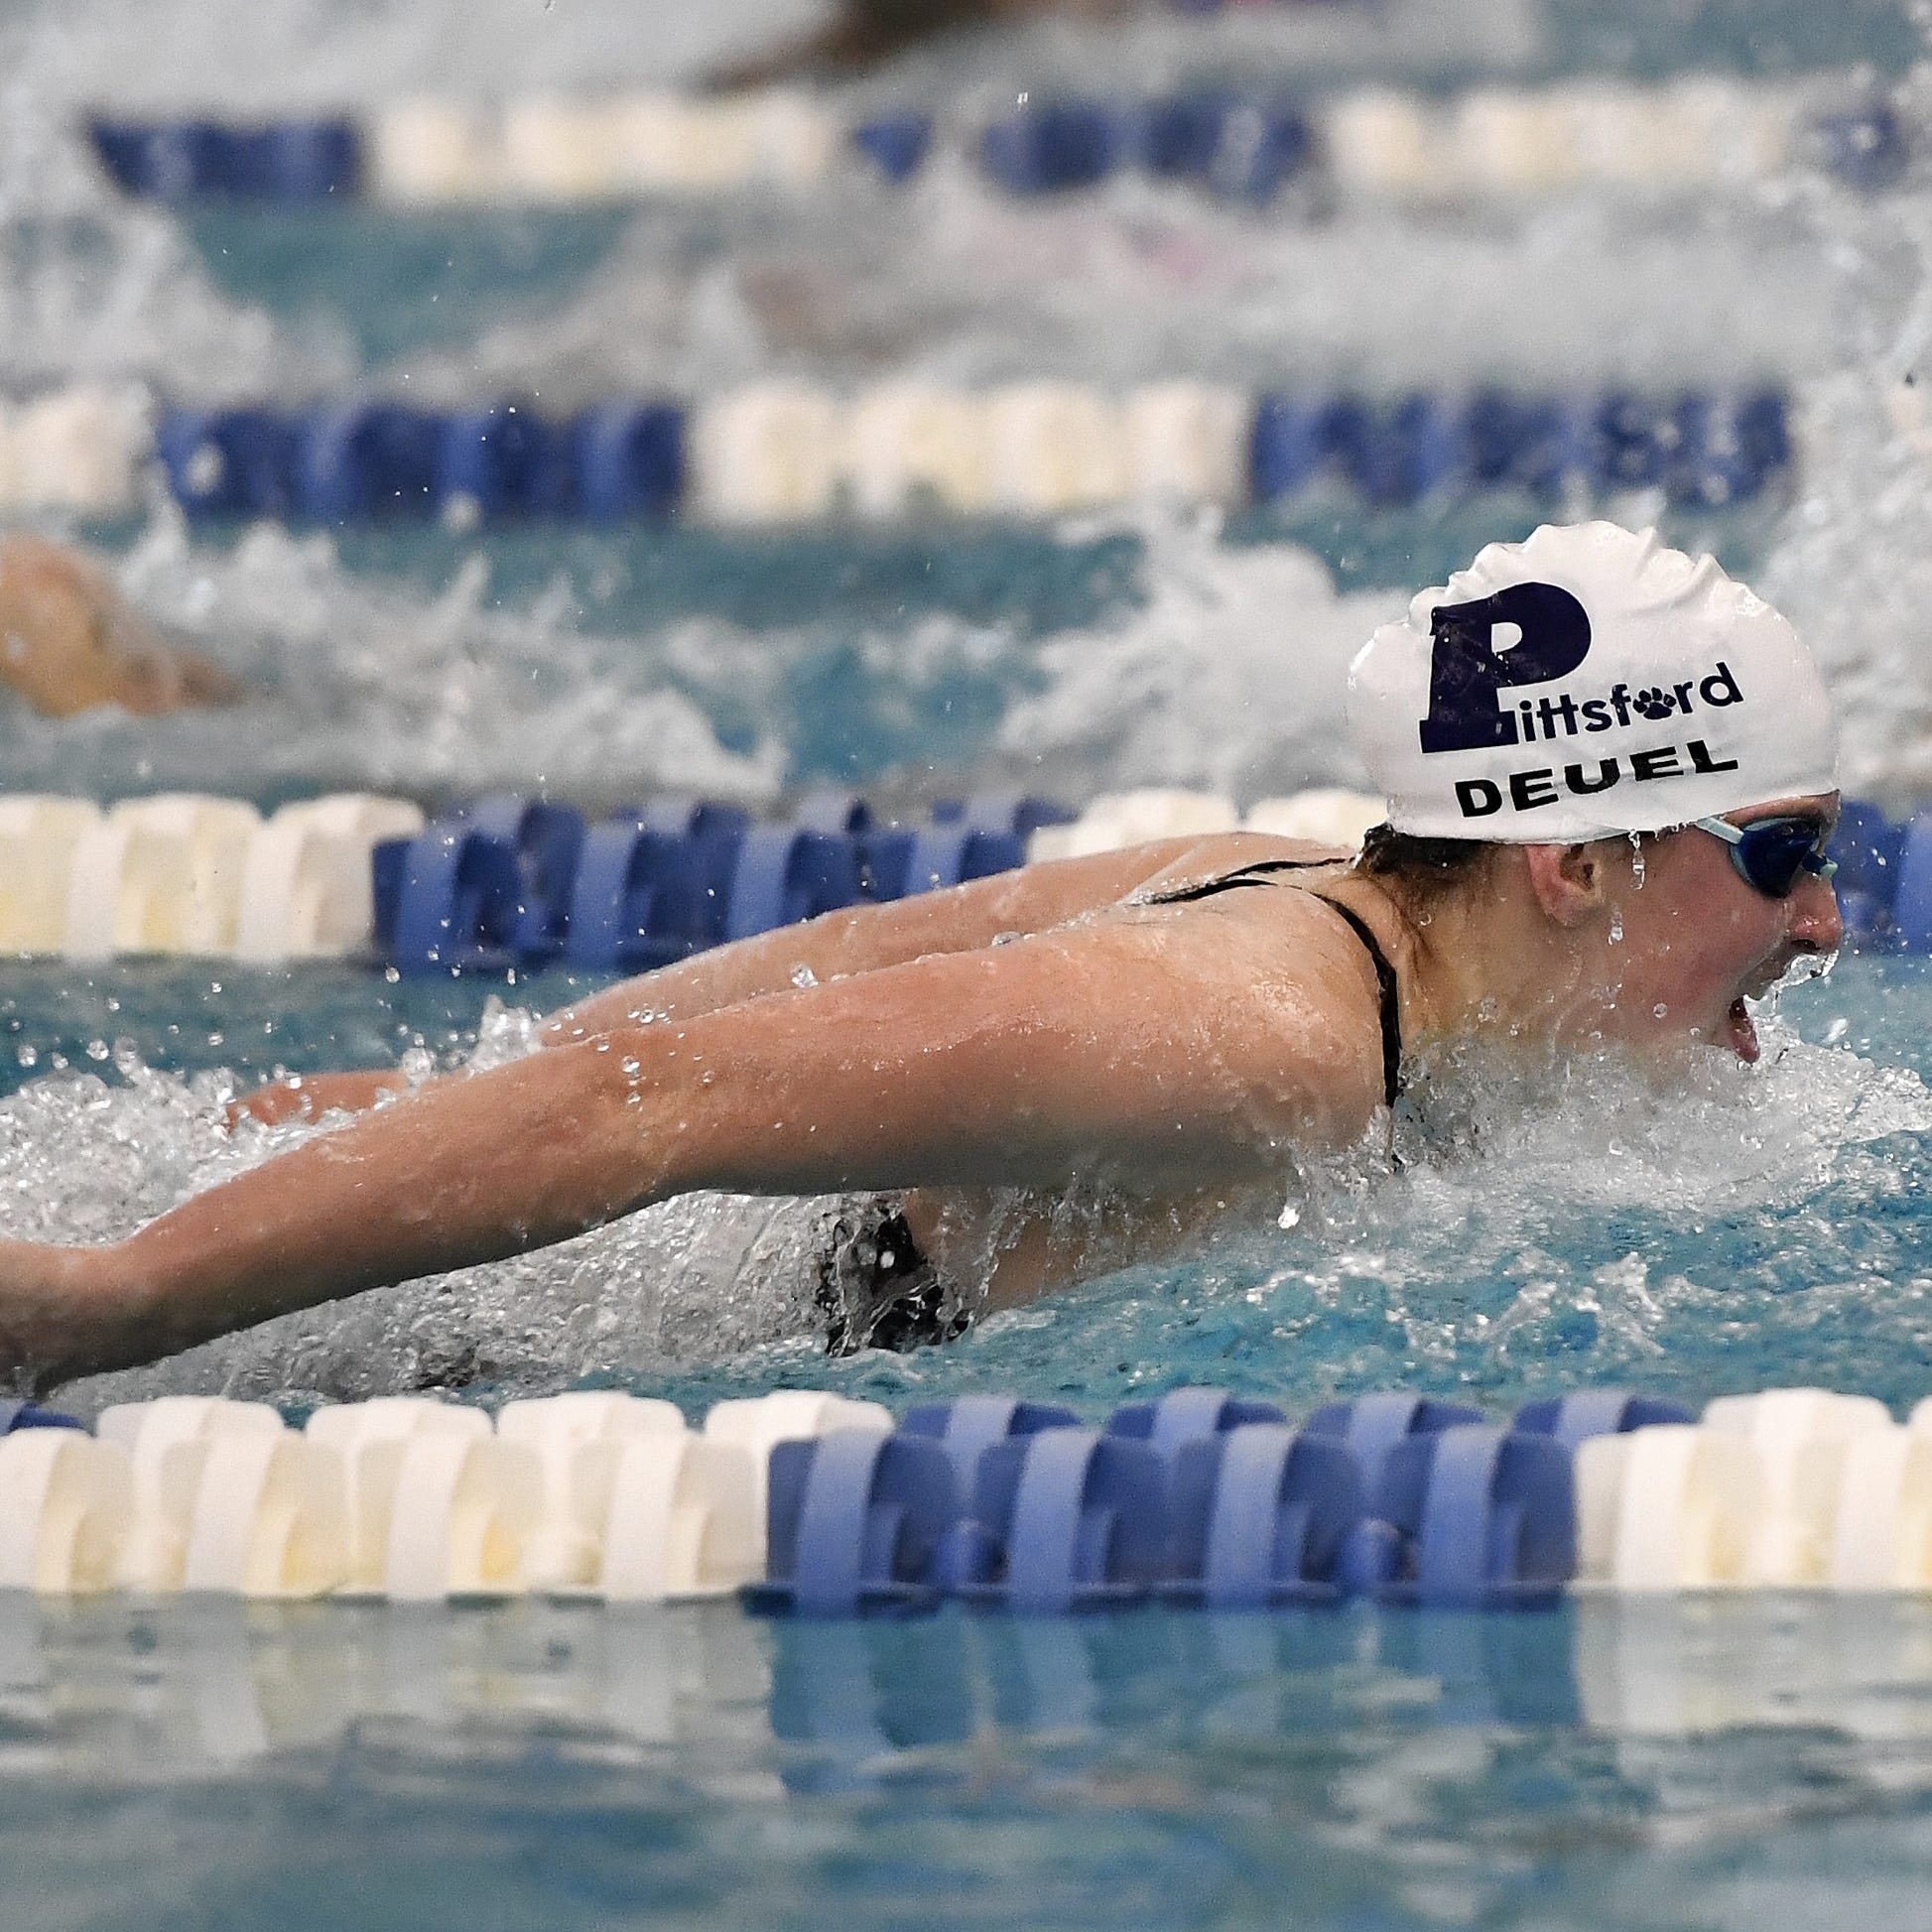 Pittsford's Megan Deuel wins the final of the 100...